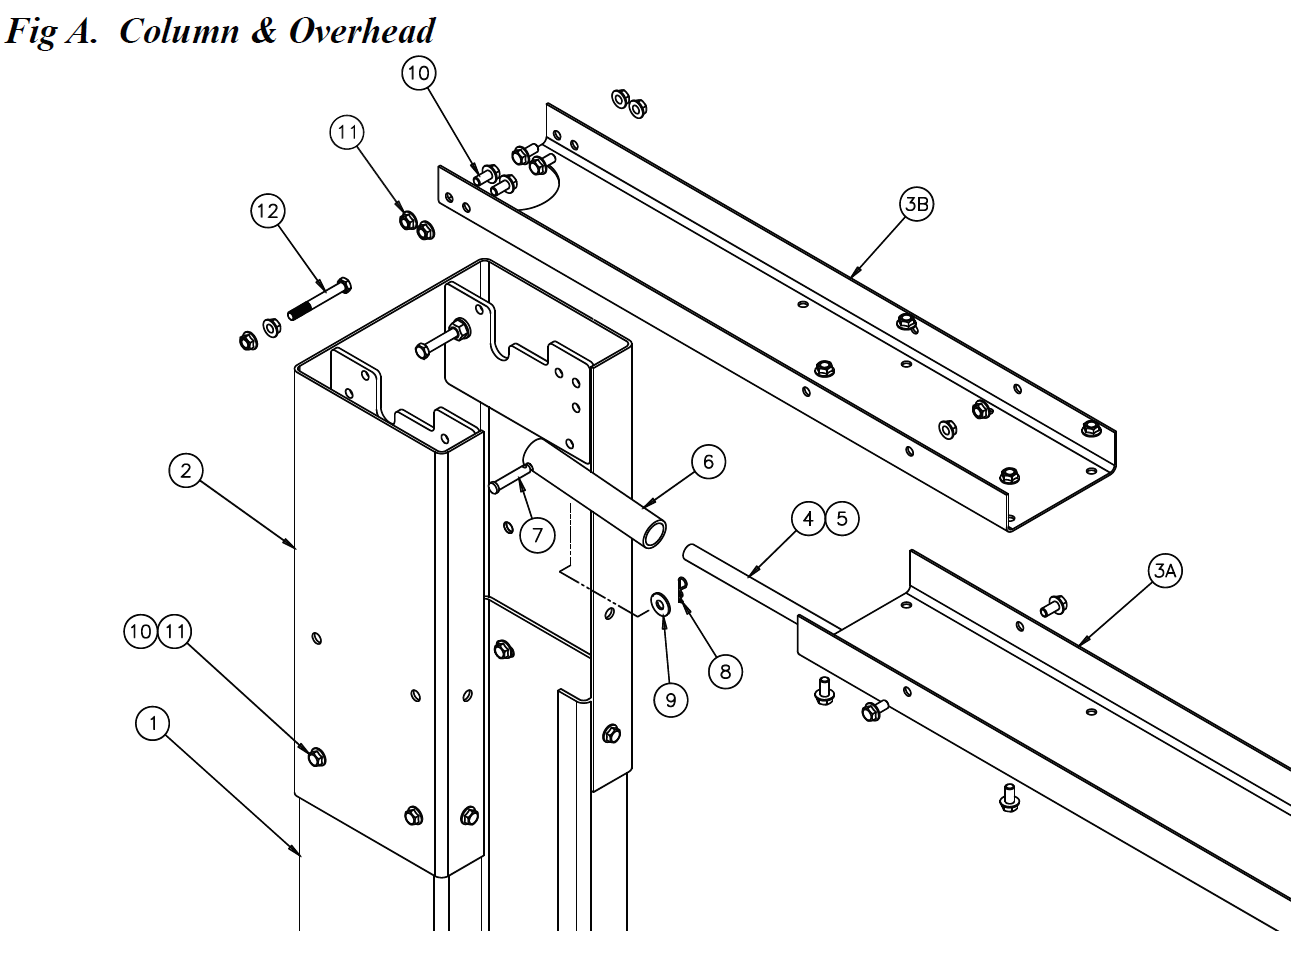 cl9-column-and-overhead-diagram.png